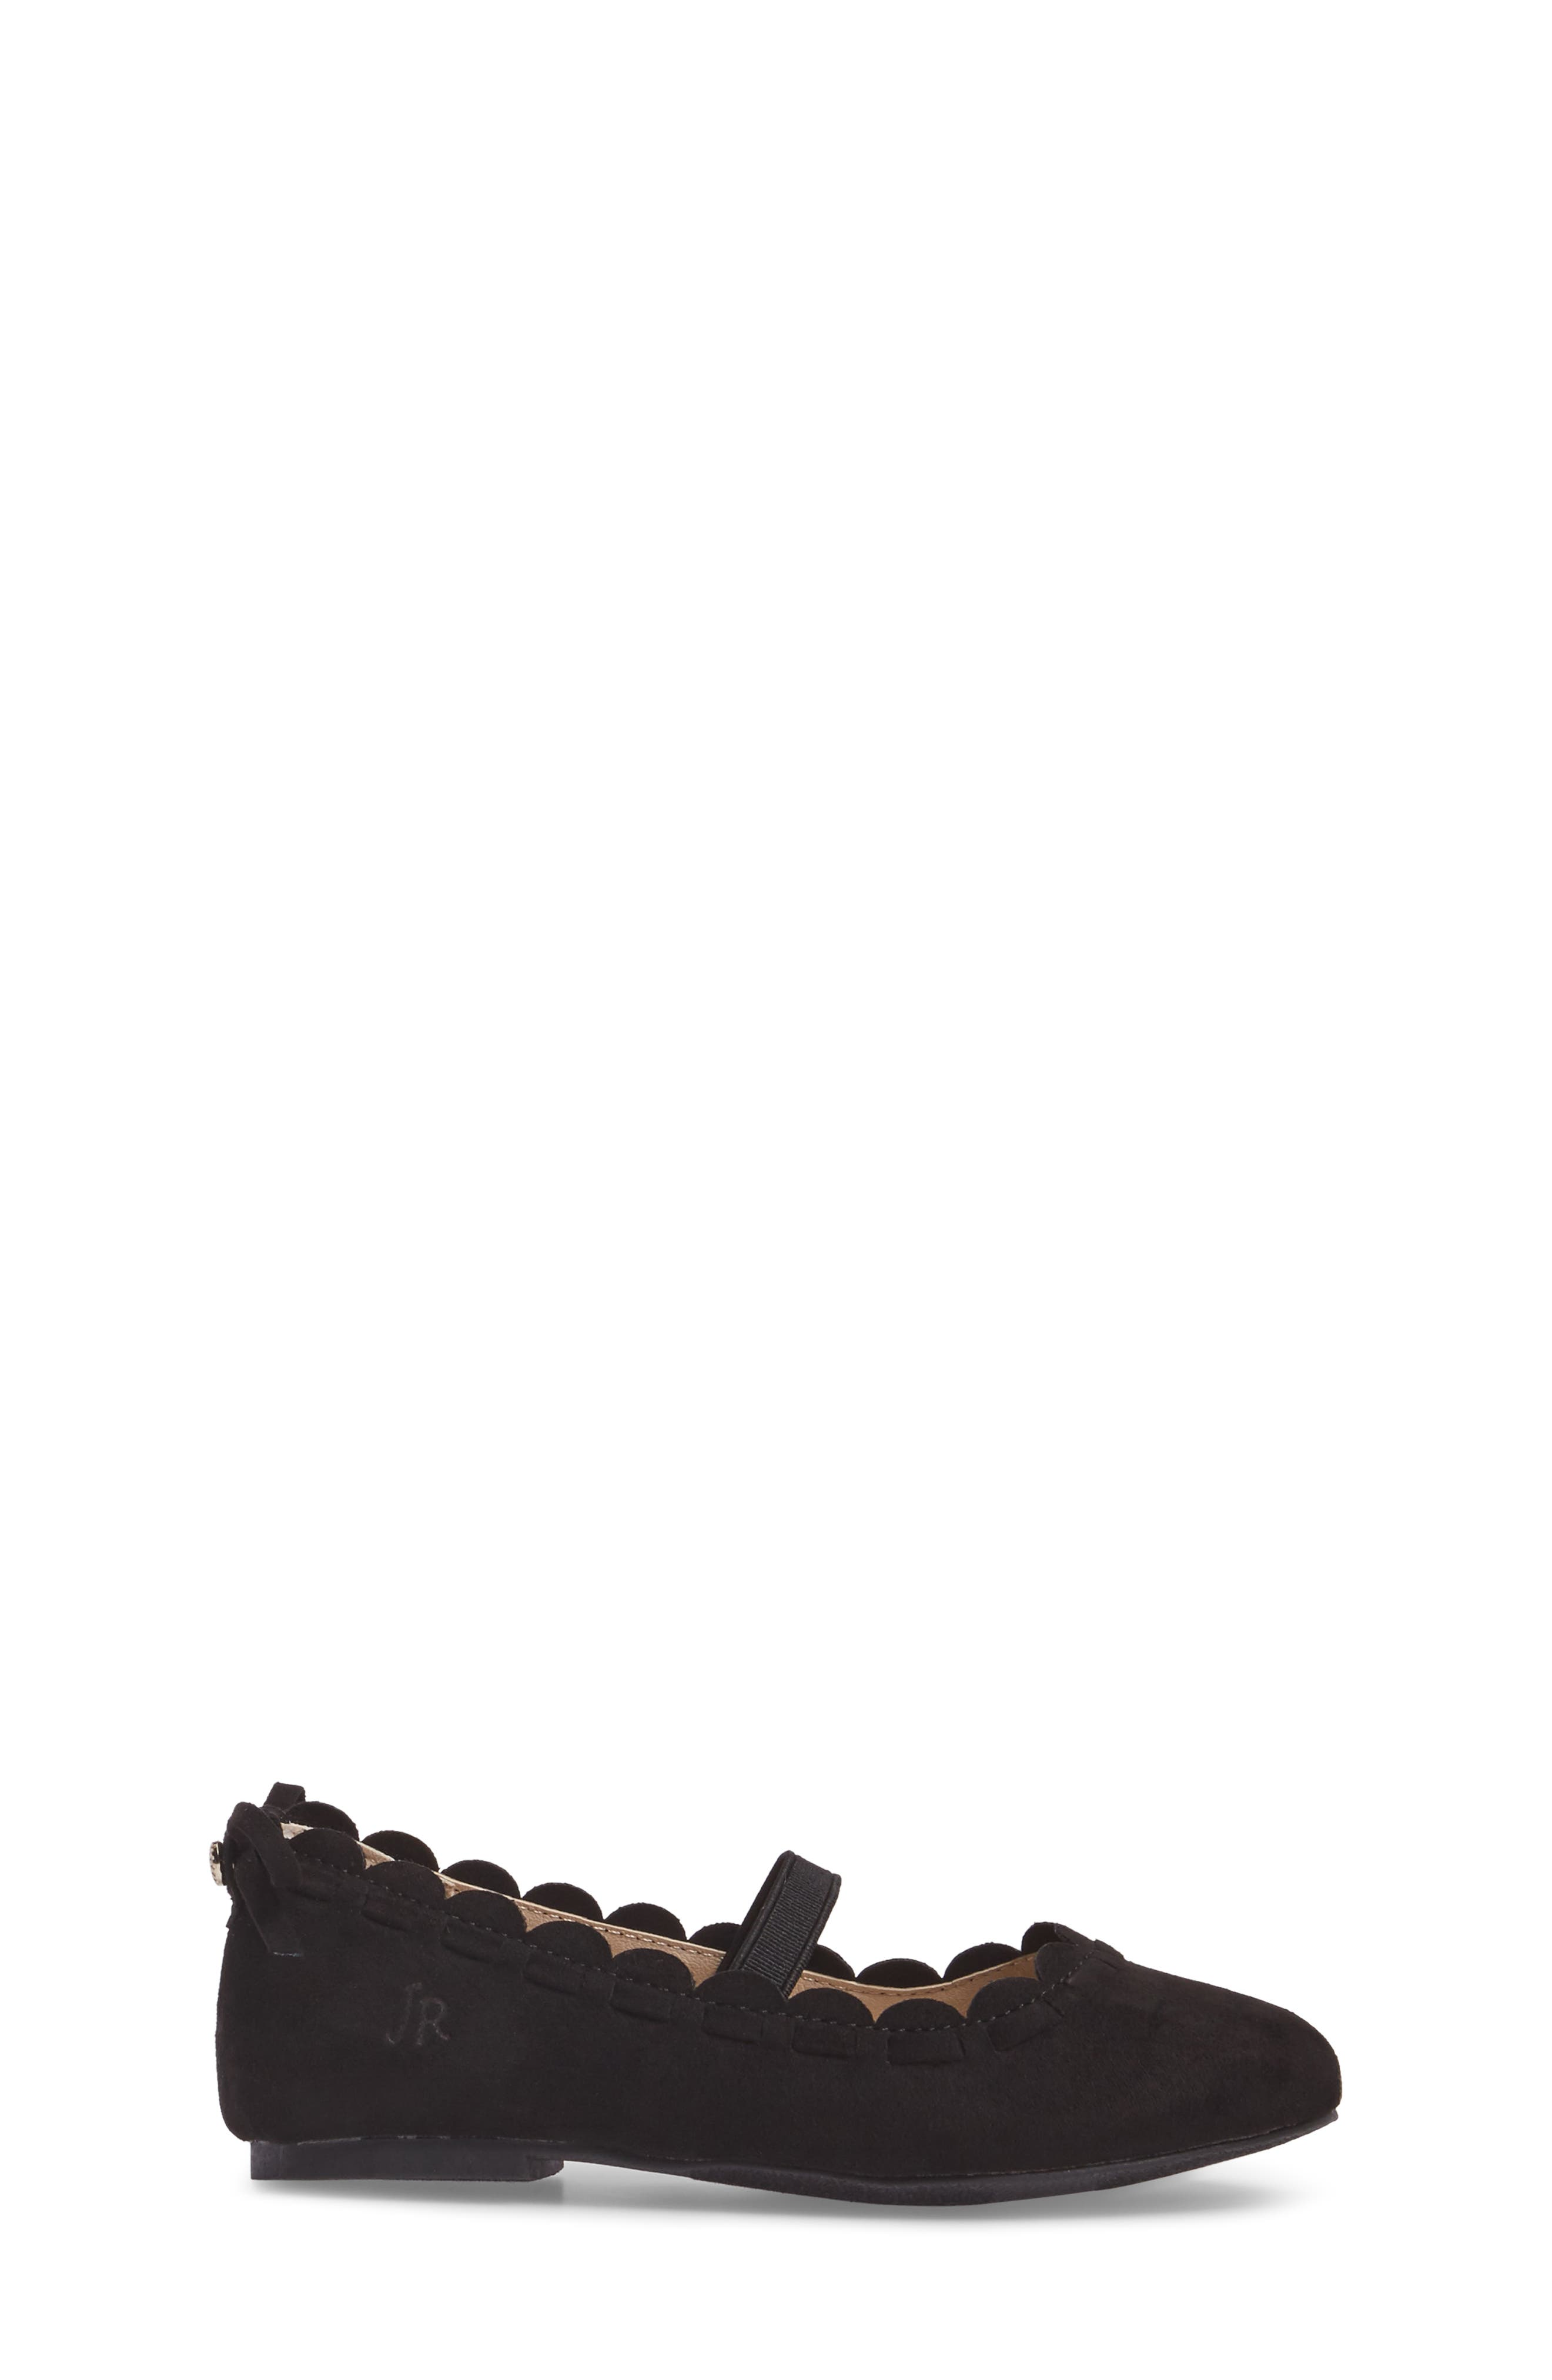 Little Miss Lucie Scalloped Mary Jane Flat,                             Alternate thumbnail 3, color,                             001